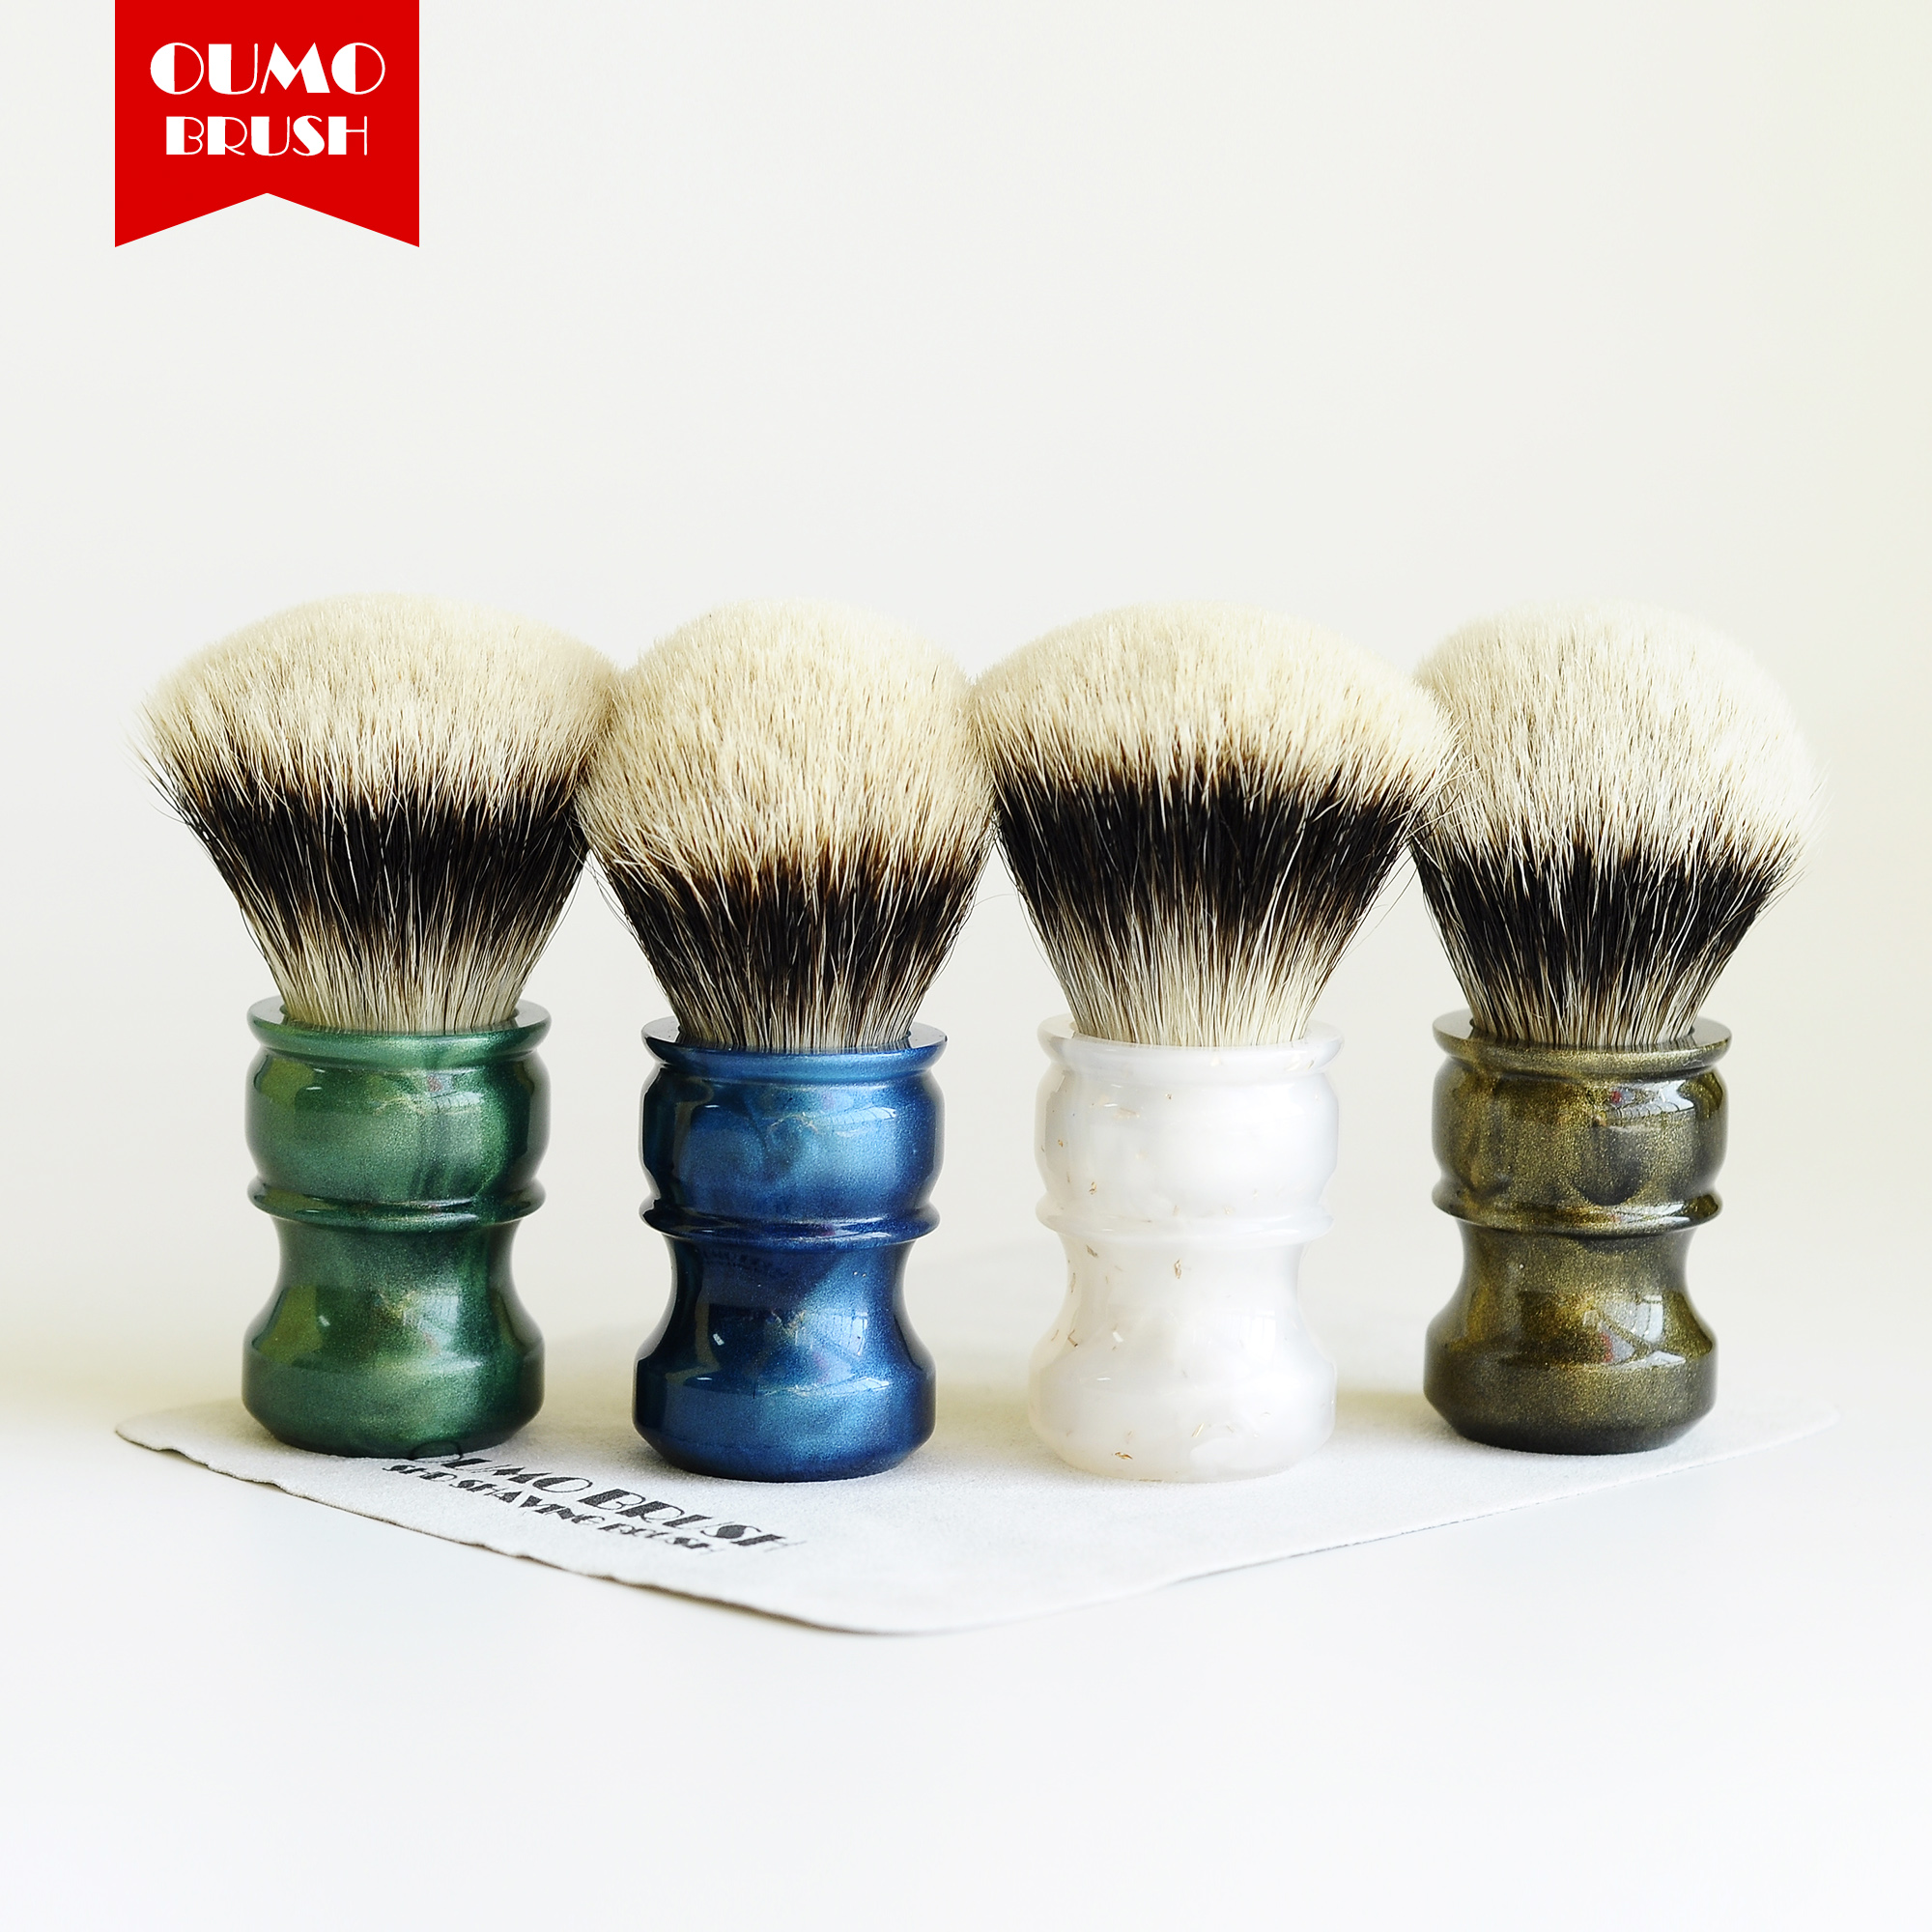 OUMO BRUSH- Fans Exclusive Limit Shaving Brush With SHD WT Finest 2band Bulb Badger Knots Shaving Brush Knot